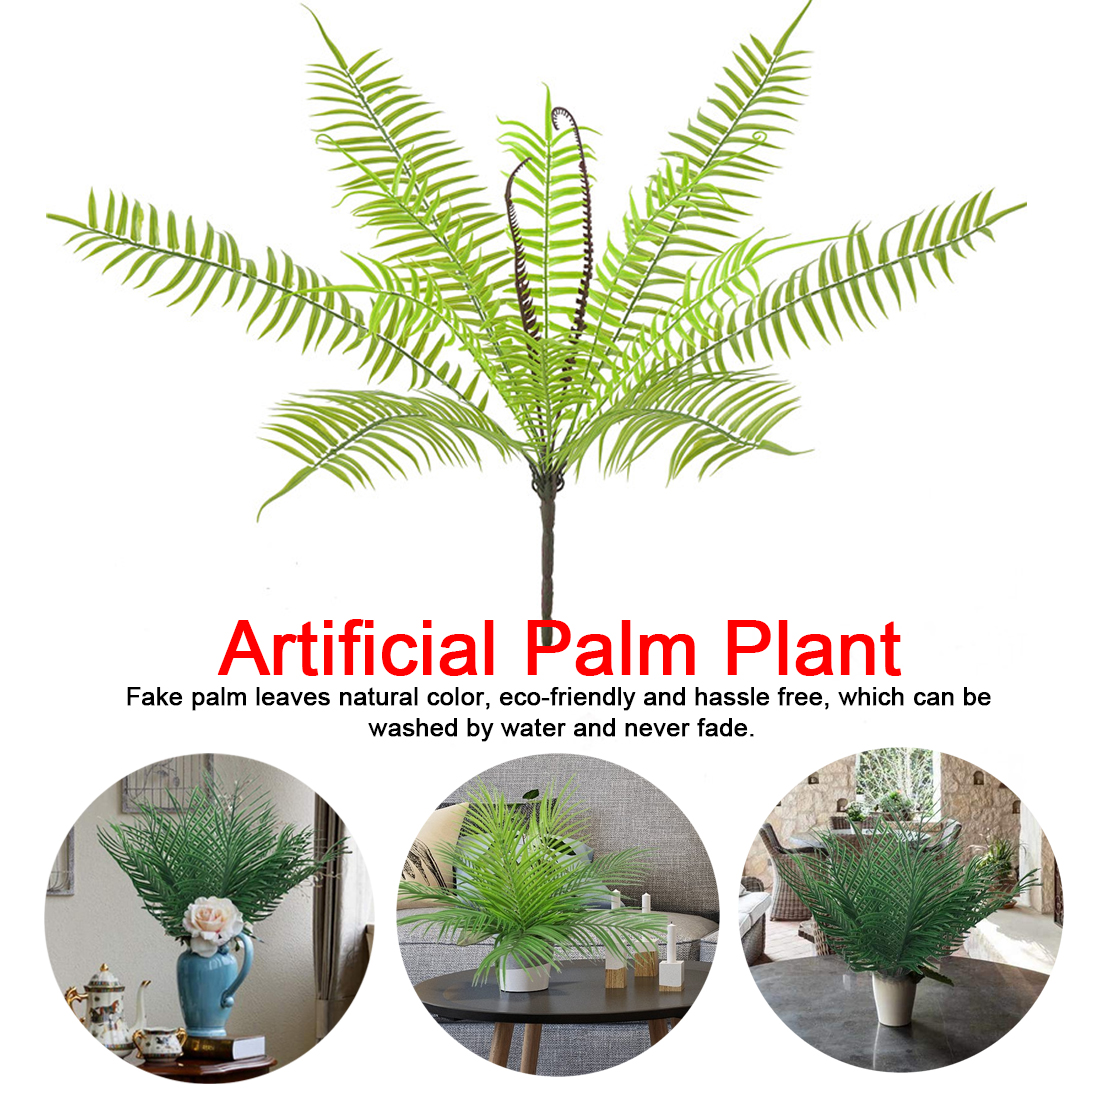 US $0.71 28% OFF Artificial Plant Palm Leaf 9/14 nch Bush Greenery on herb plants for home, vine plants for home, potted plants for home, tropical plants for home, water plants for home, decorative plants for home, indoor plants for home,